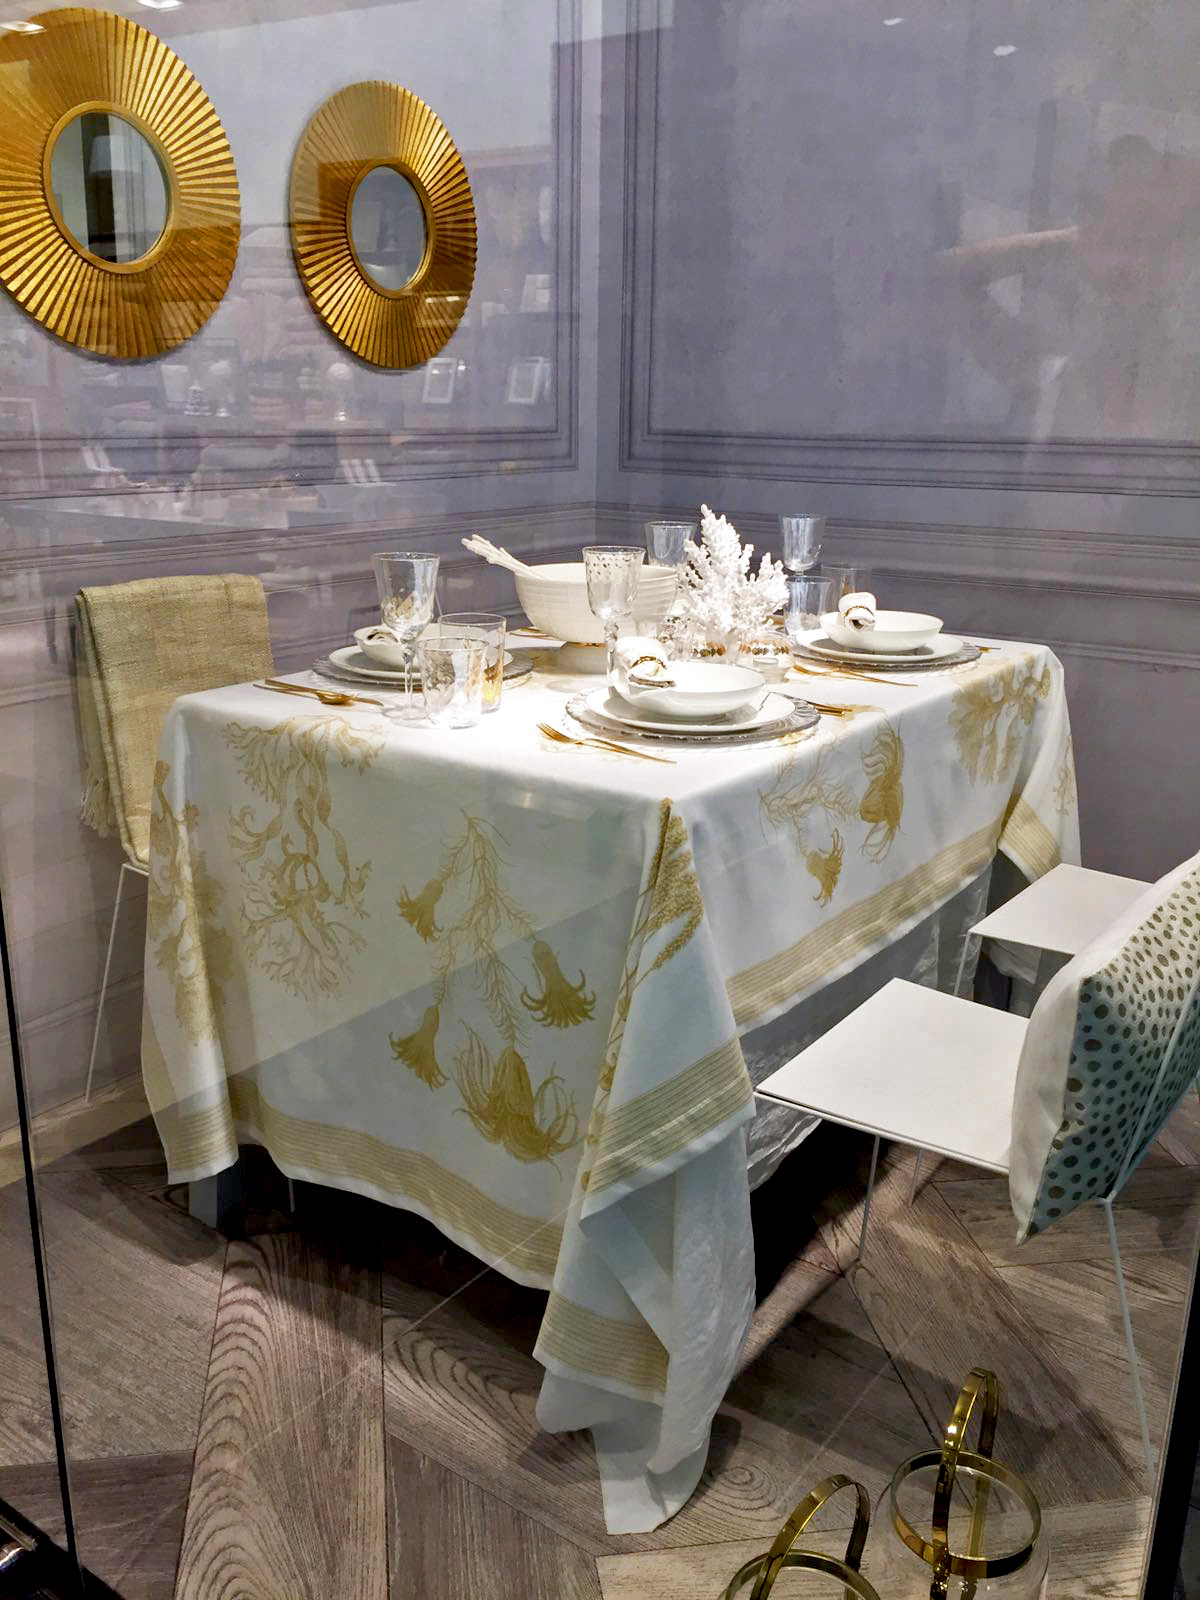 zara-home-2016-gold-coral-tablecloth-table-setting-ideas-morroccan-bohemian-french-parisian-table-regency-style-kitchen-design